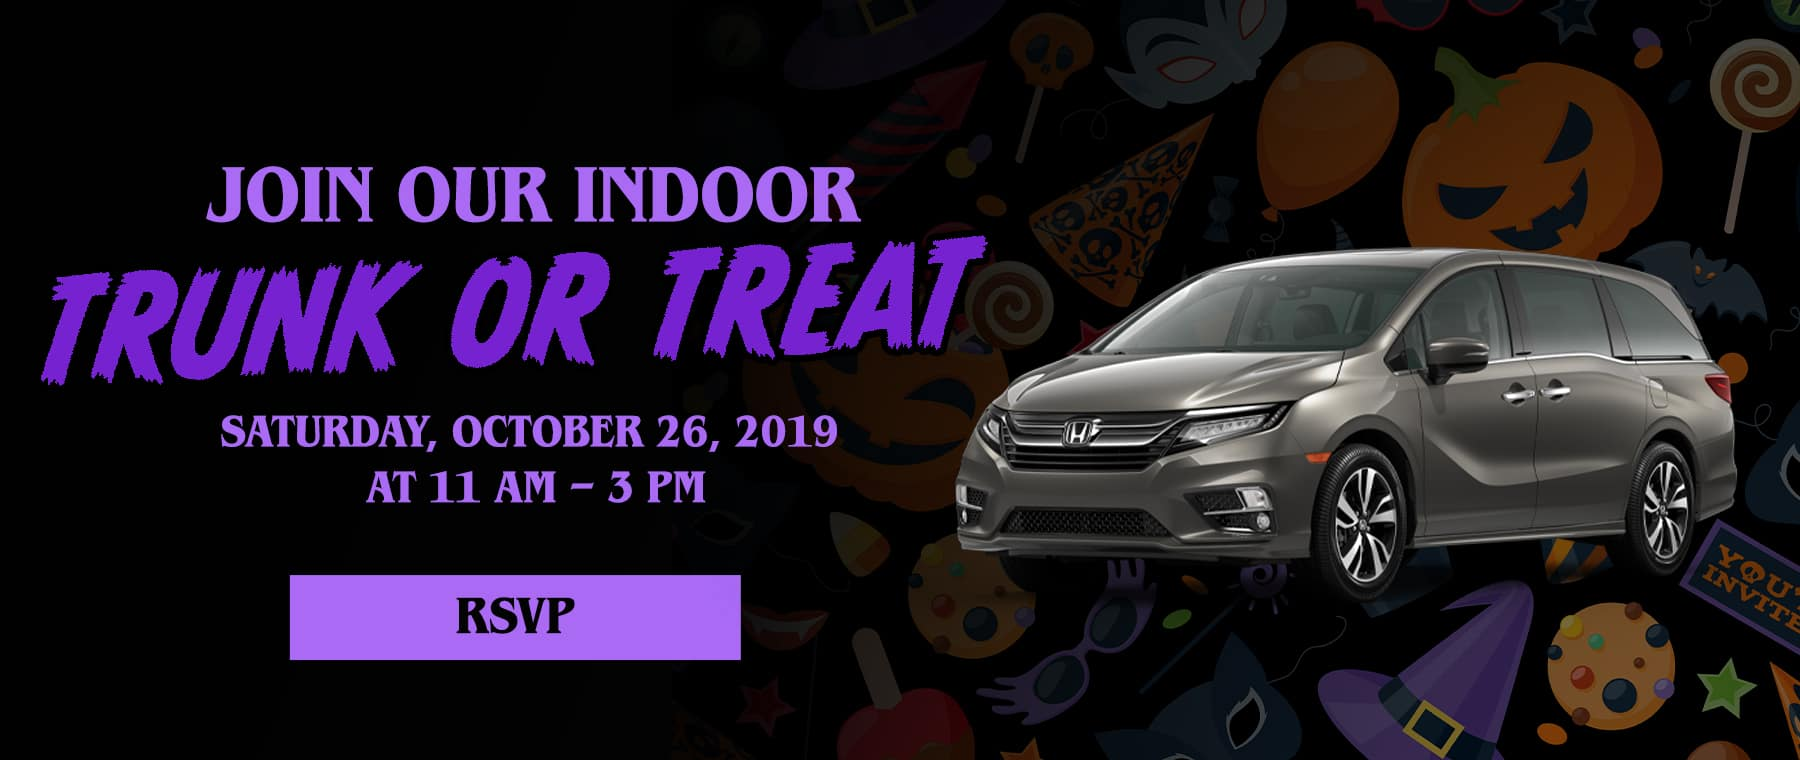 Trunk or Treat With Us!